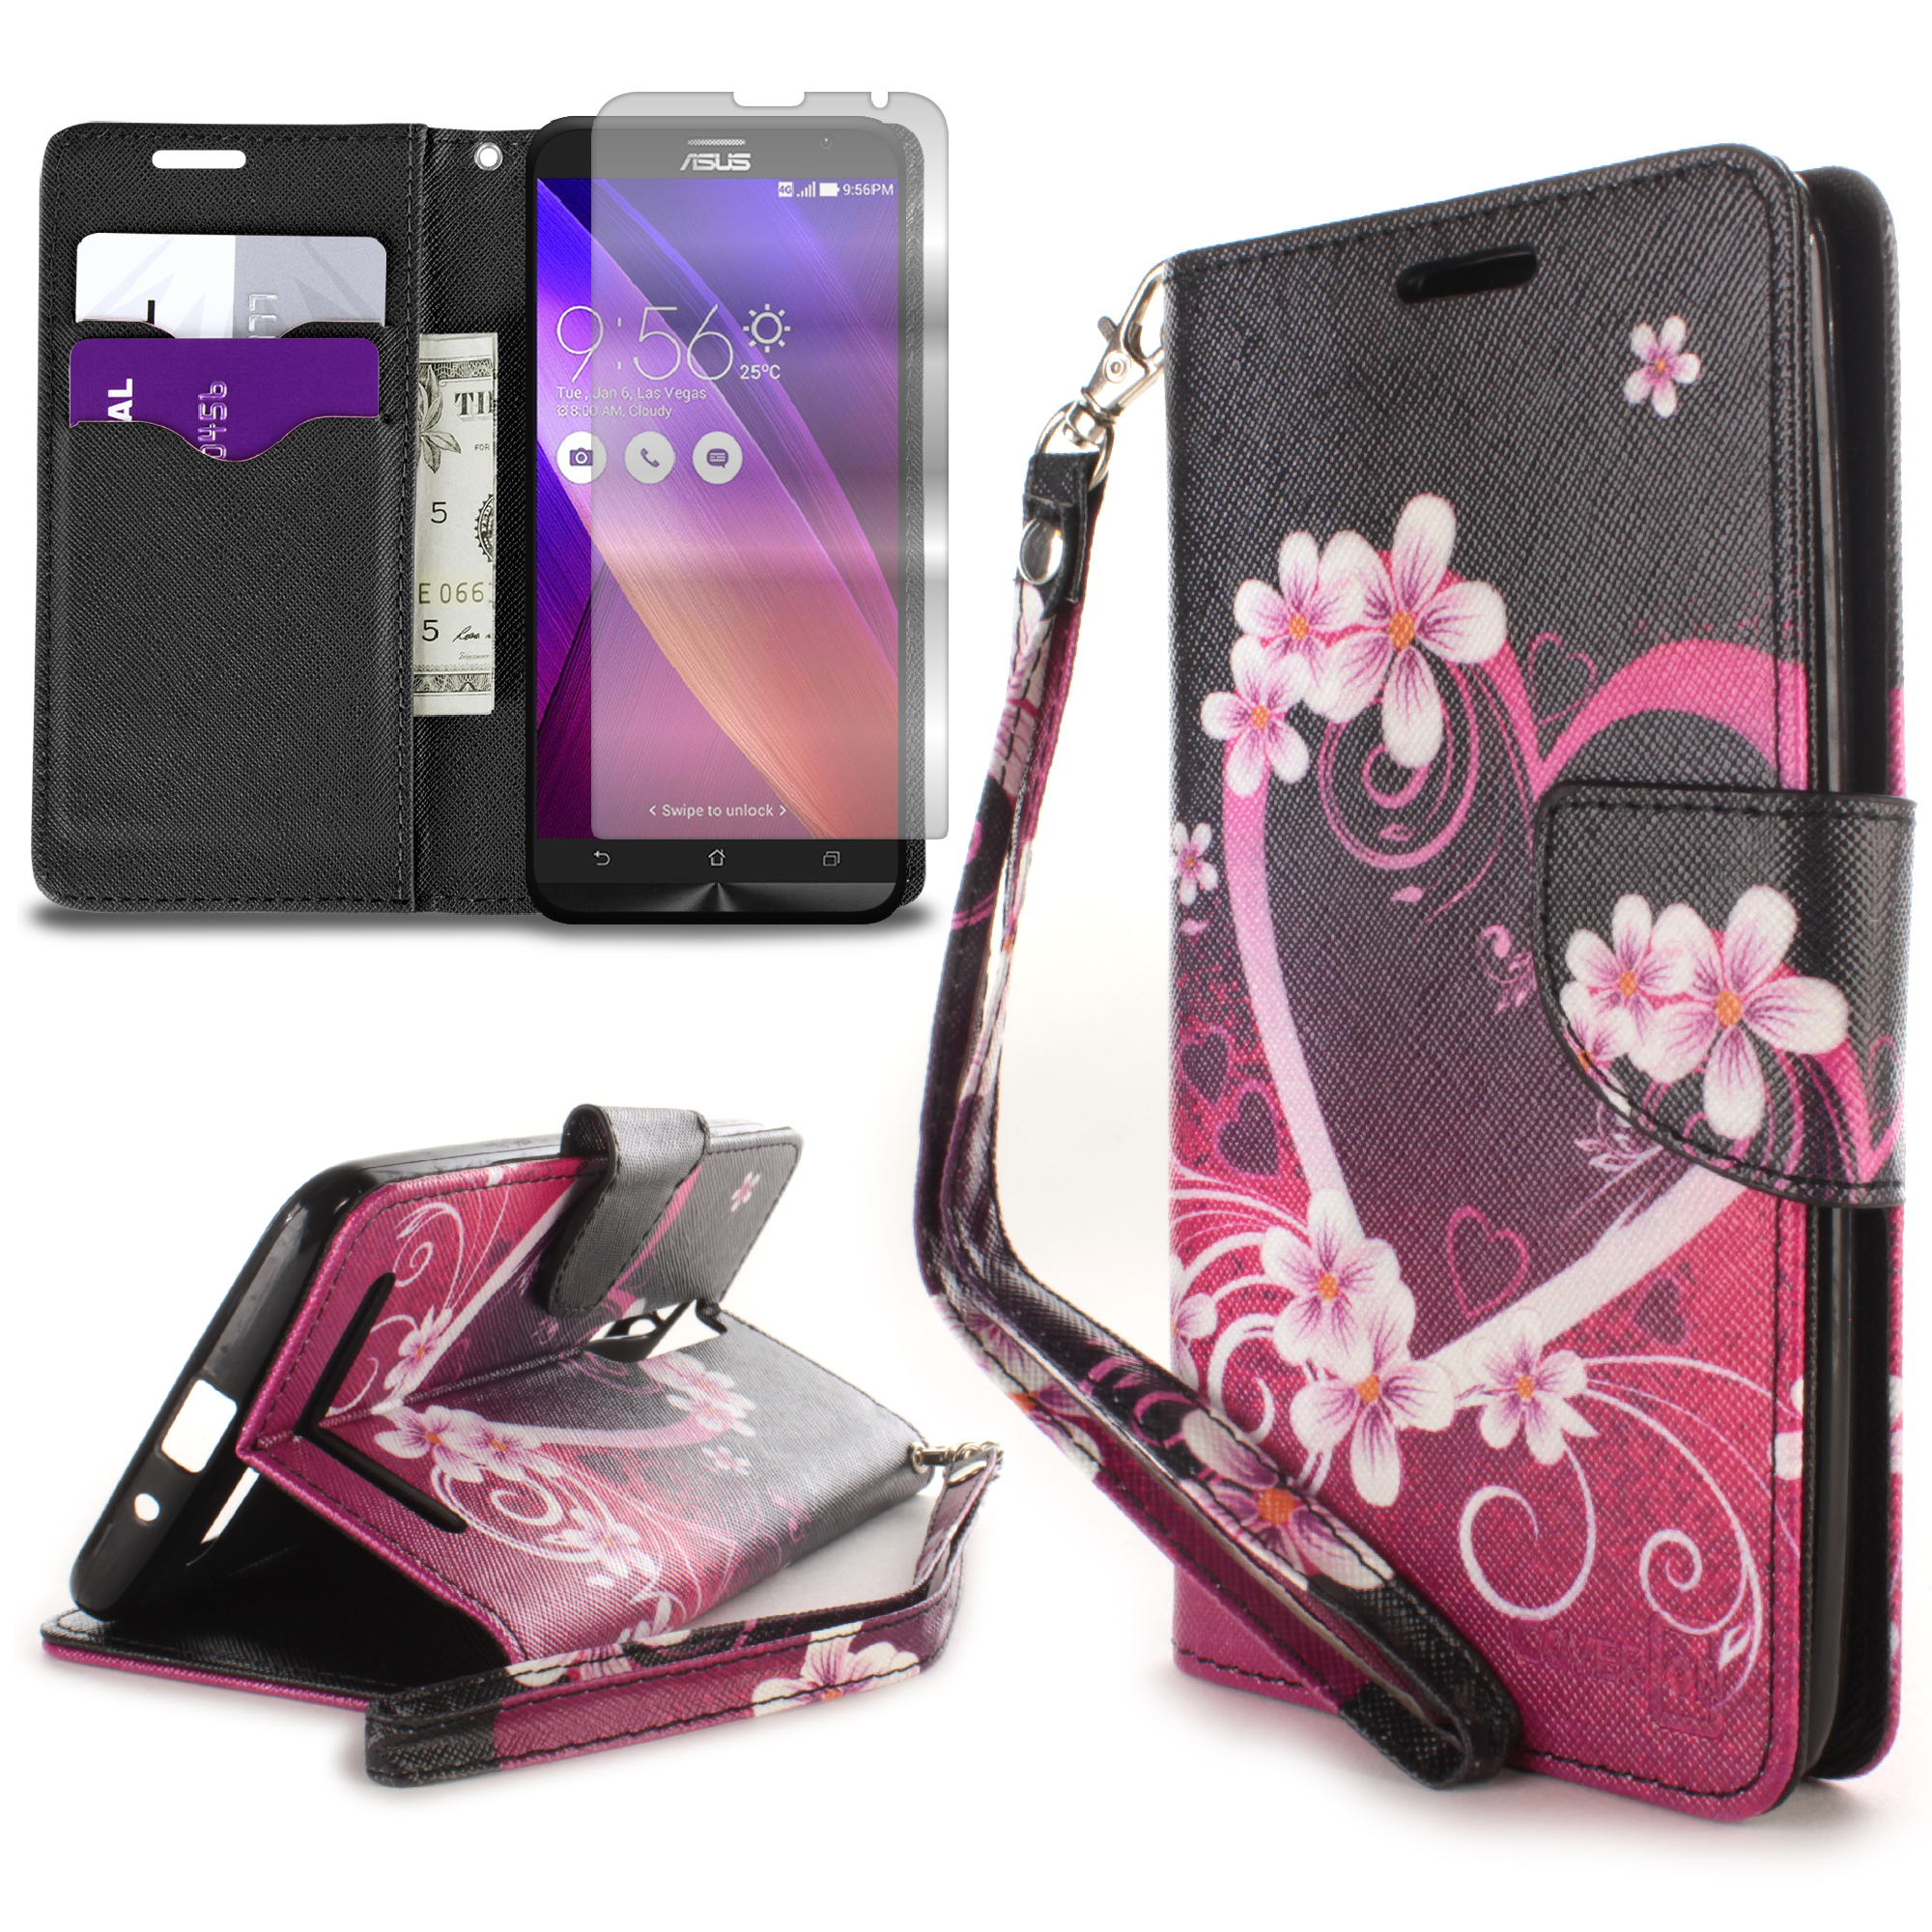 newest 57828 95956 Details about for Asus Zenfone 2 5.5